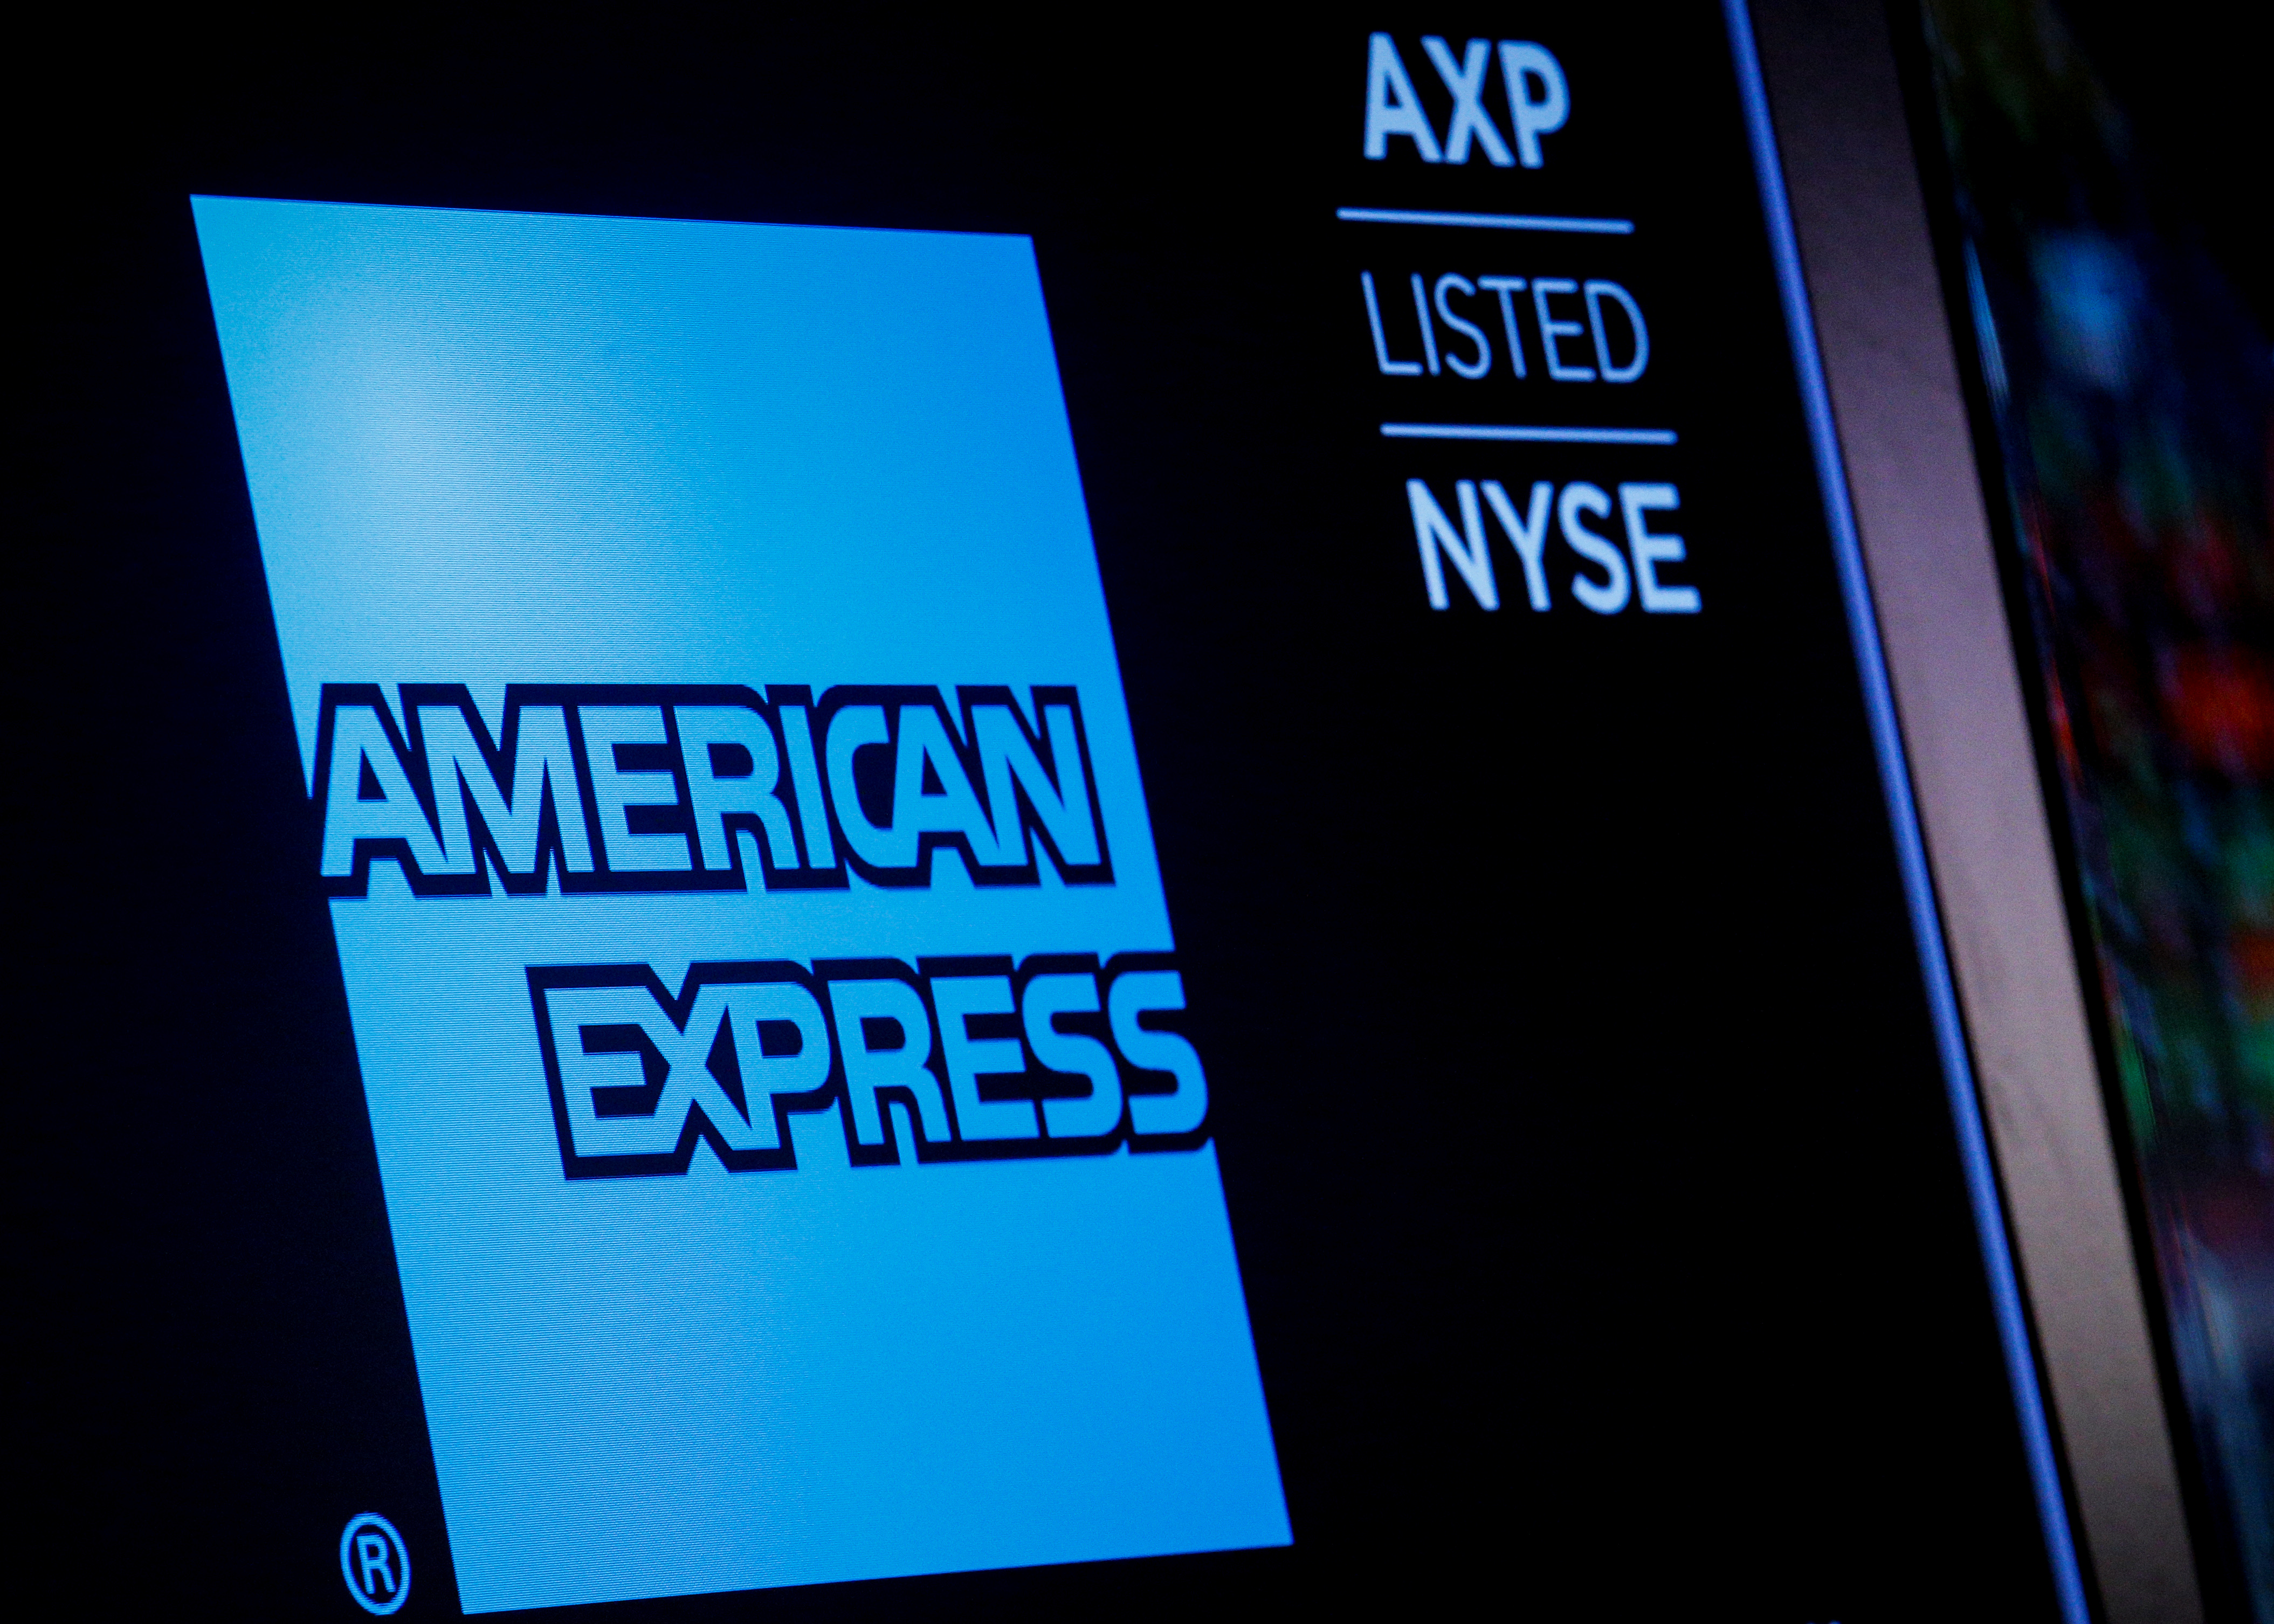 American Express logo and trading symbol are displayed on a screen at the New York Stock Exchange (NYSE) in New York, U.S., December 6, 2017. REUTERS/Brendan McDermid